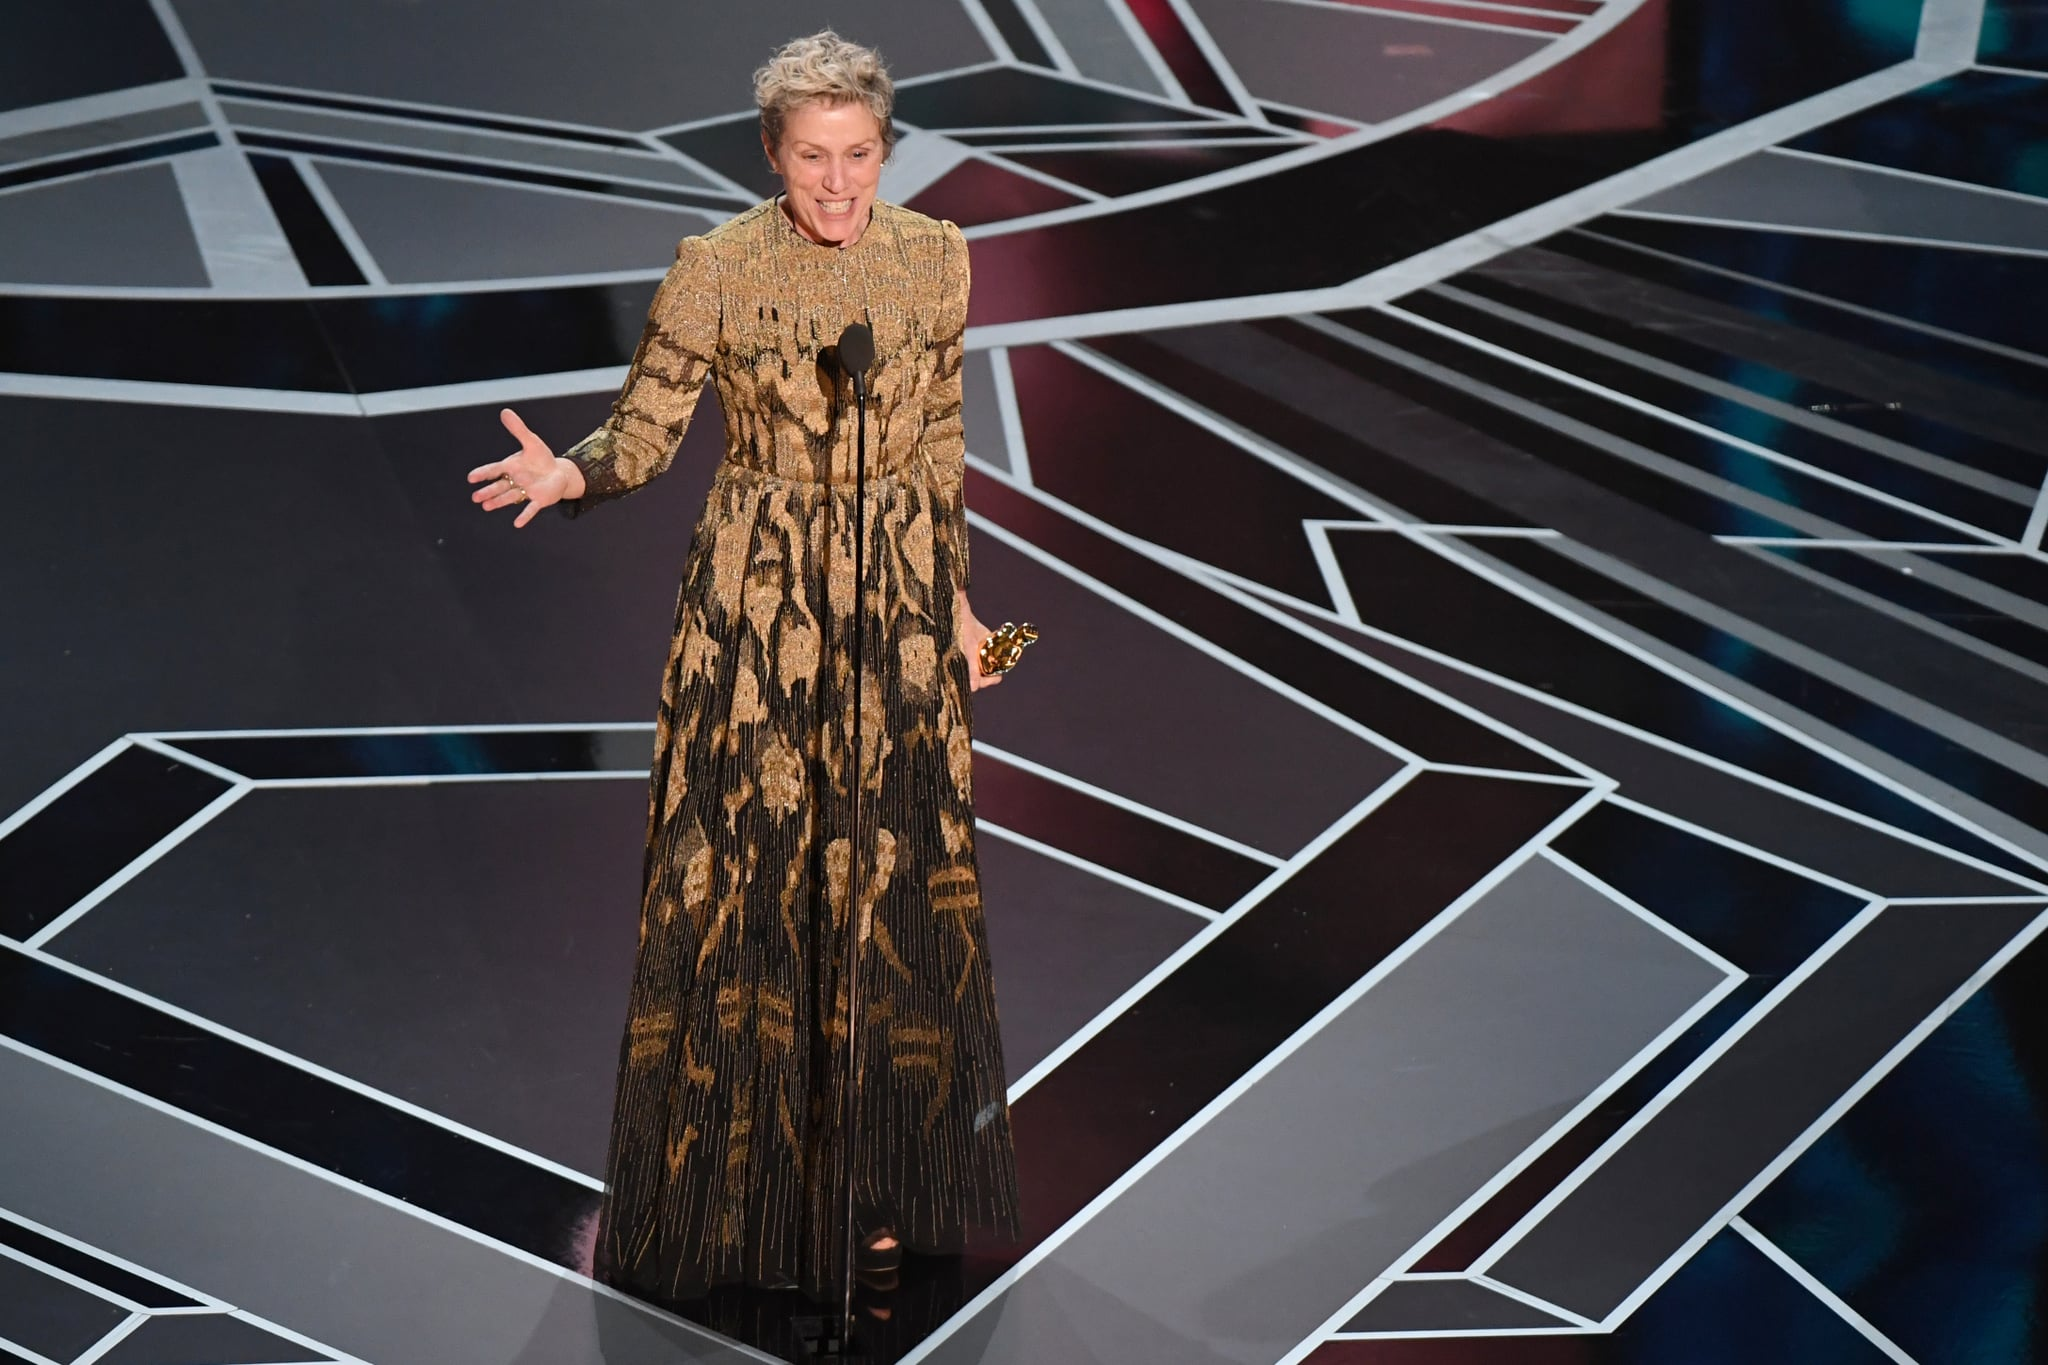 TOPSHOT - US actress Frances McDormand delivers a speech after she won the Oscar for Best Actress in